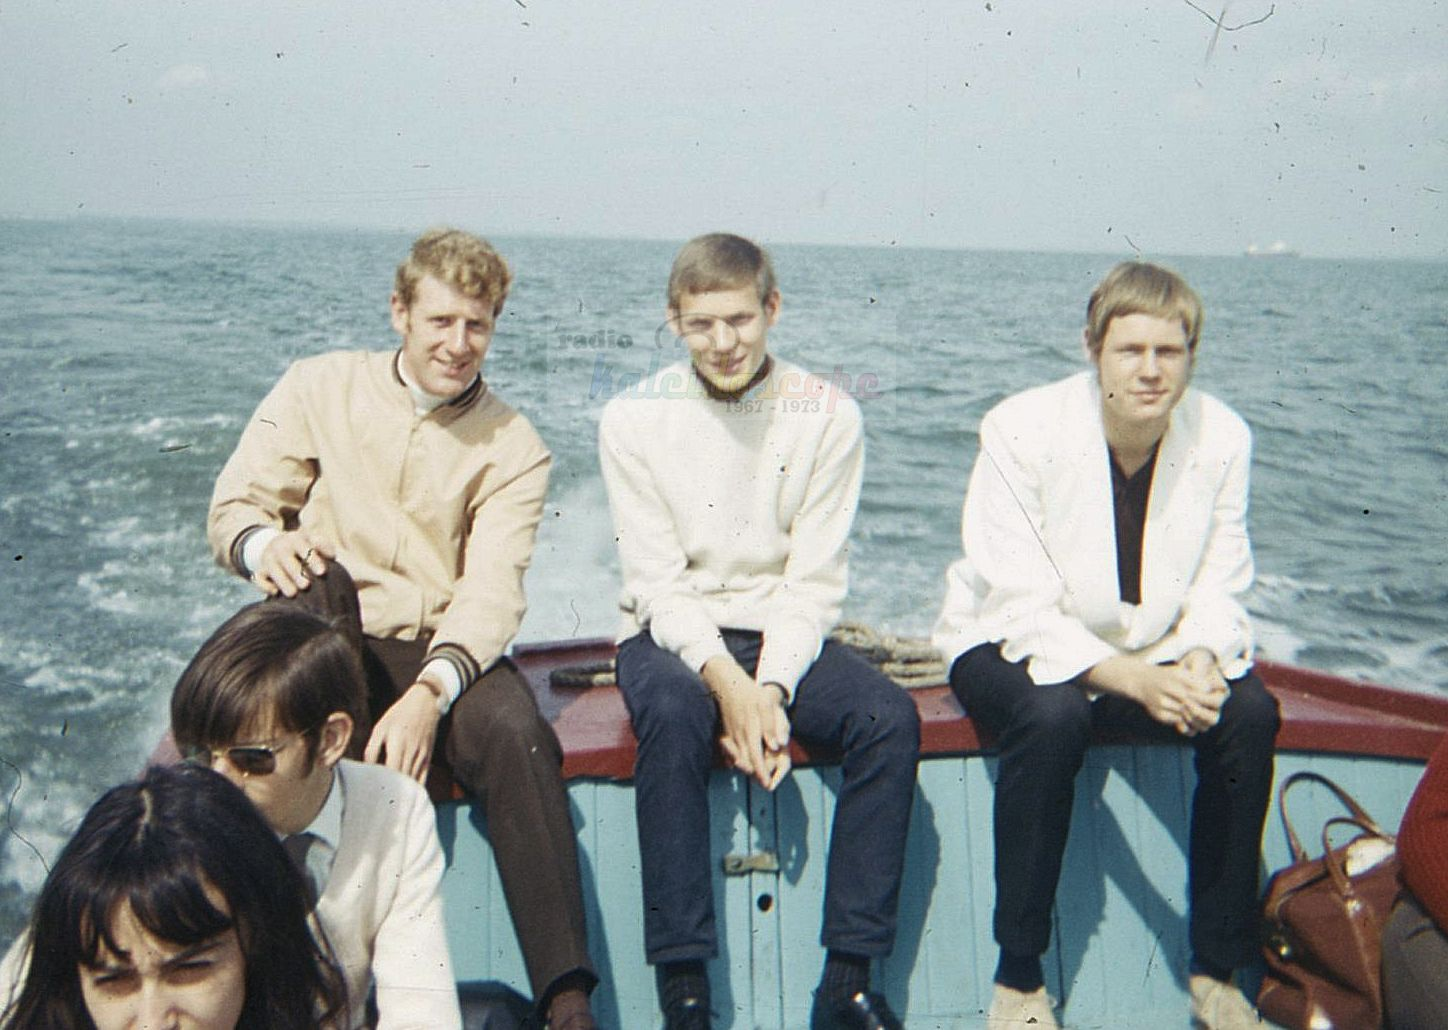 Colin_King,Mike,Bob_28.6.69